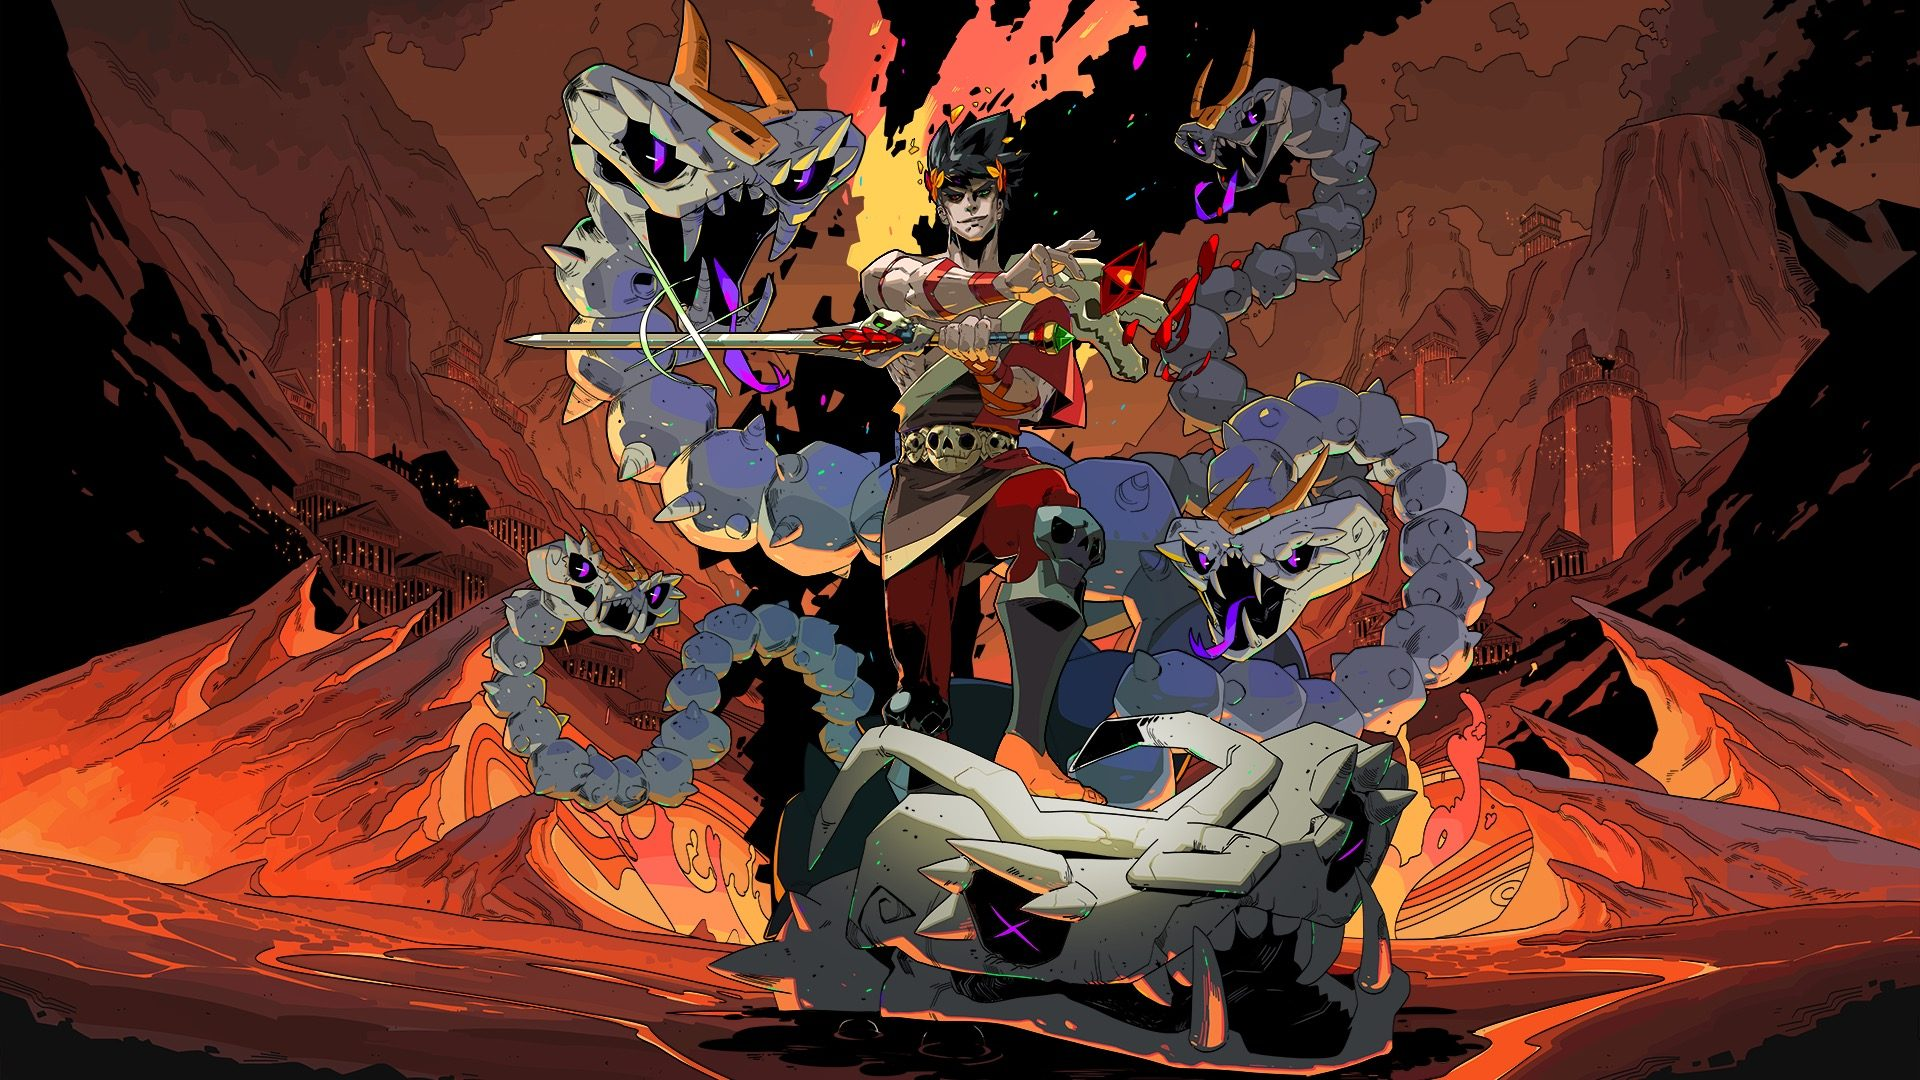 Hades launches August 13 on PS4 and PS5